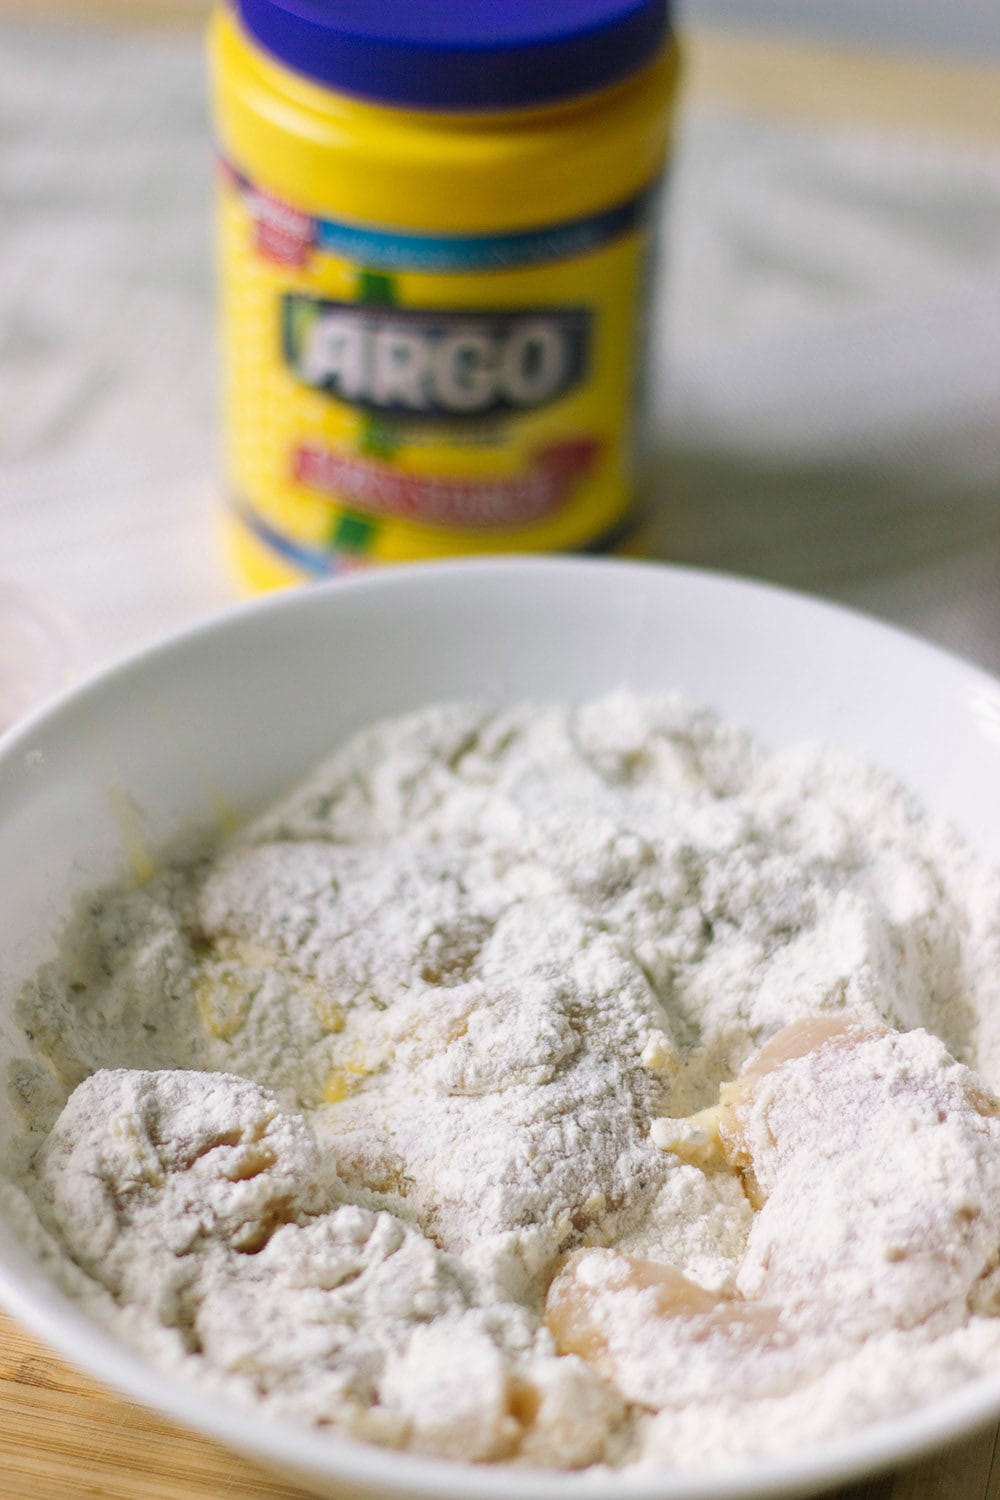 Chicken coat in flour mixture with Argo corn starch.